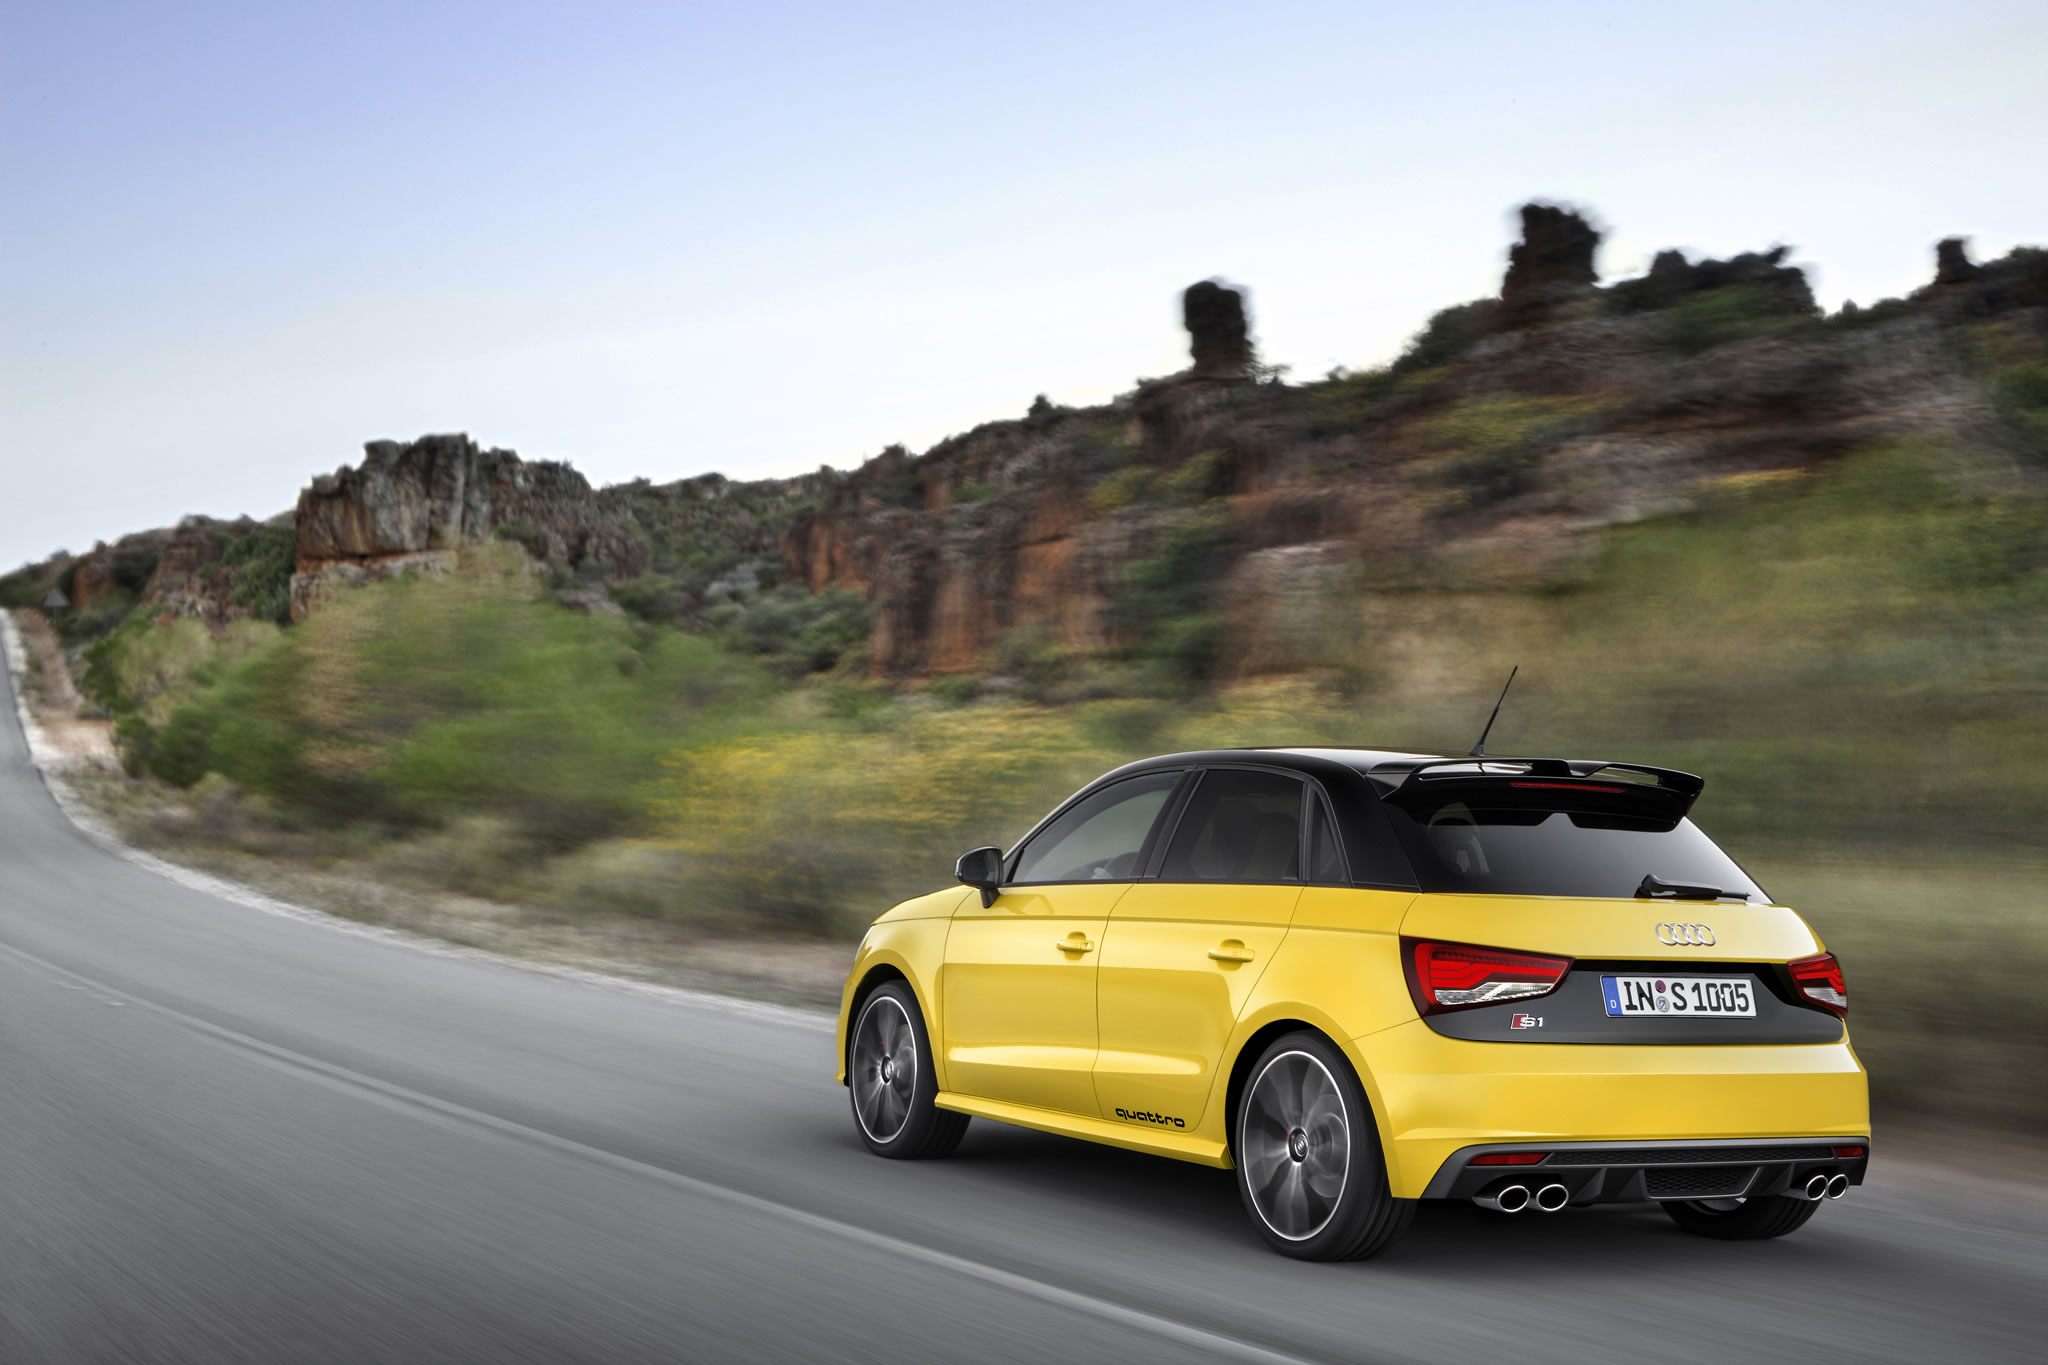 2015 audi s1 sportback rear photo vegas yellow color size 2048 x 1365 nr 12 18. Black Bedroom Furniture Sets. Home Design Ideas